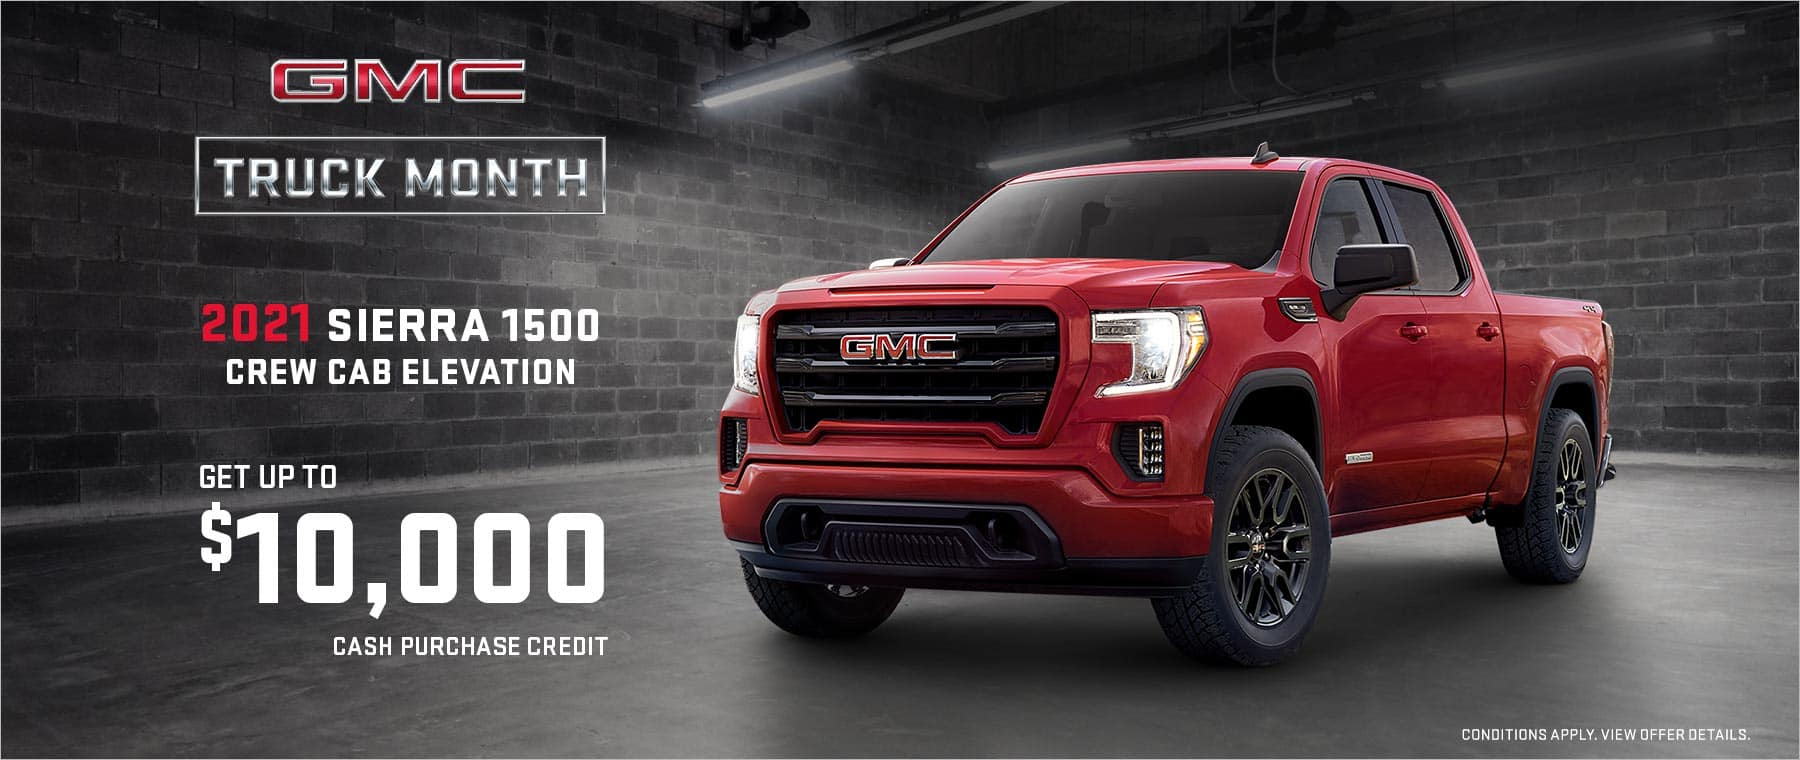 GMC Truck Month March